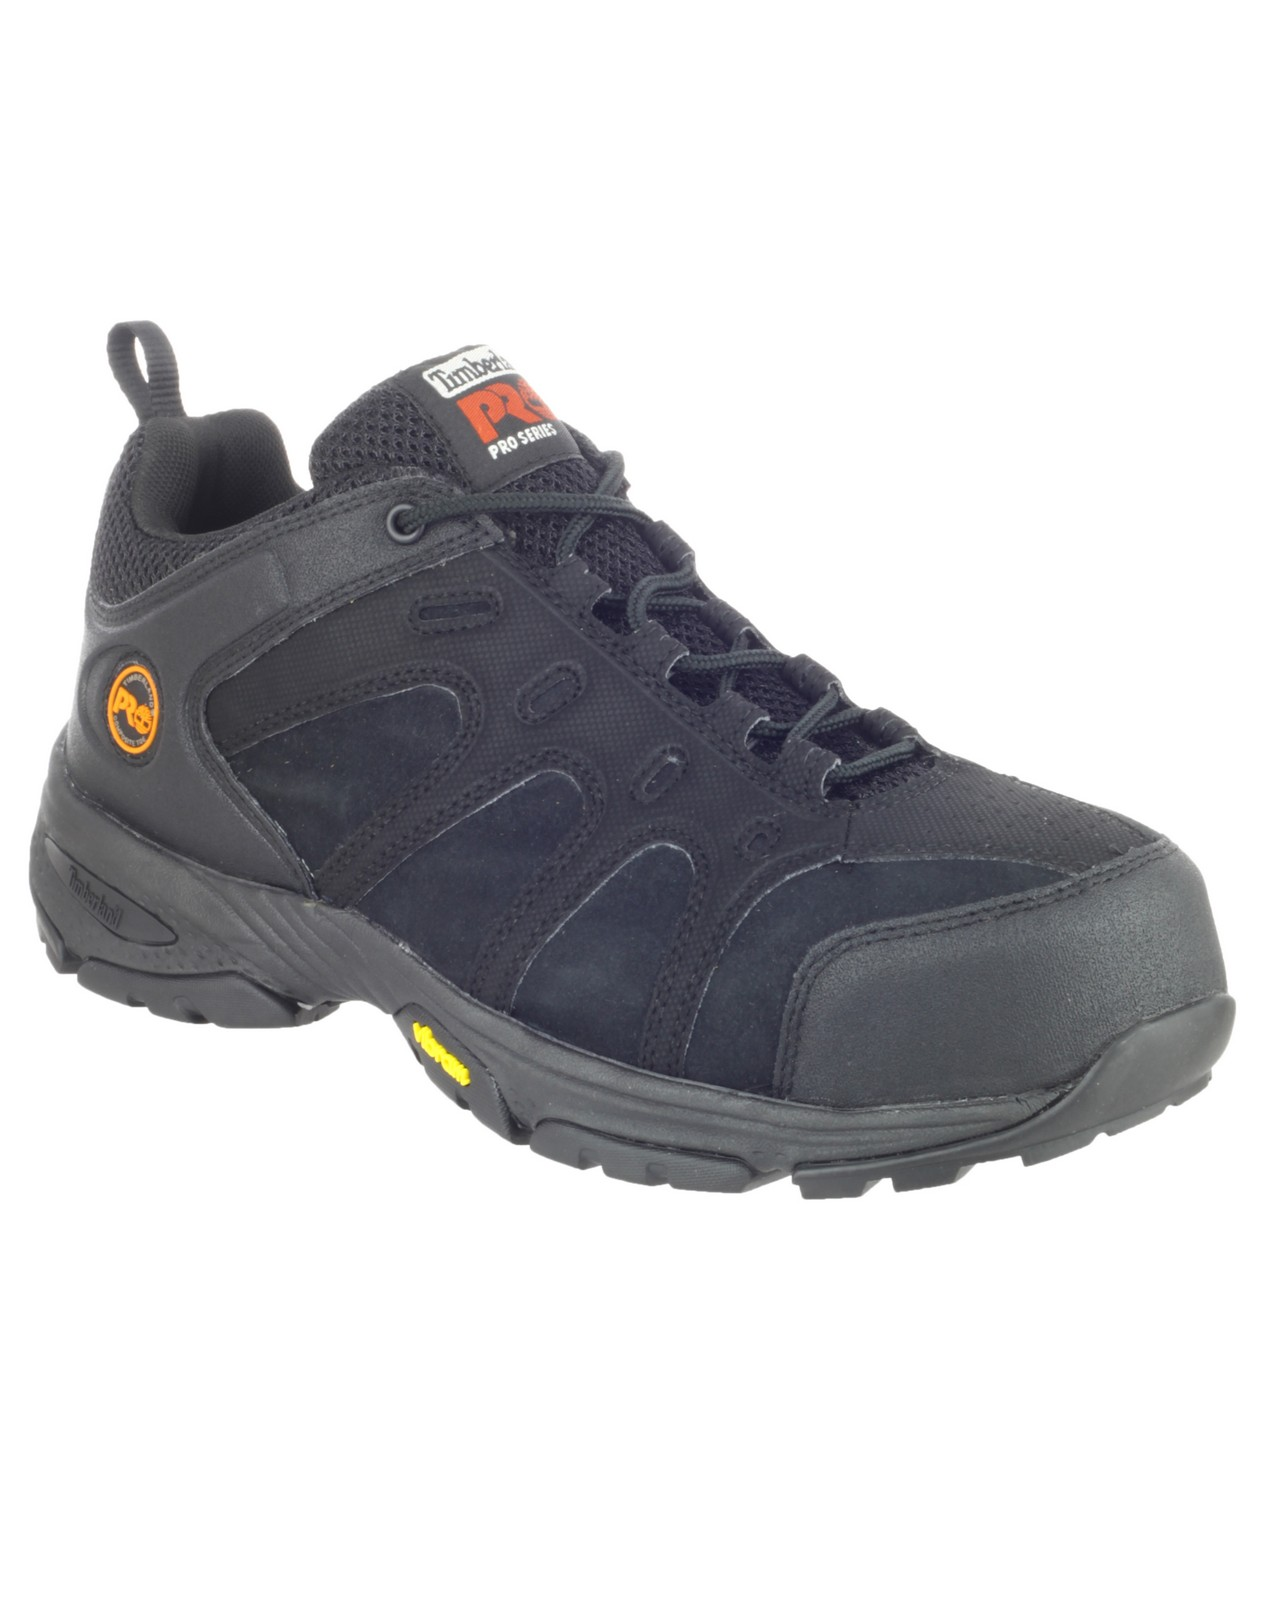 Timberland Wildcard Safety Shoes (Black) - Safety Boots R Us